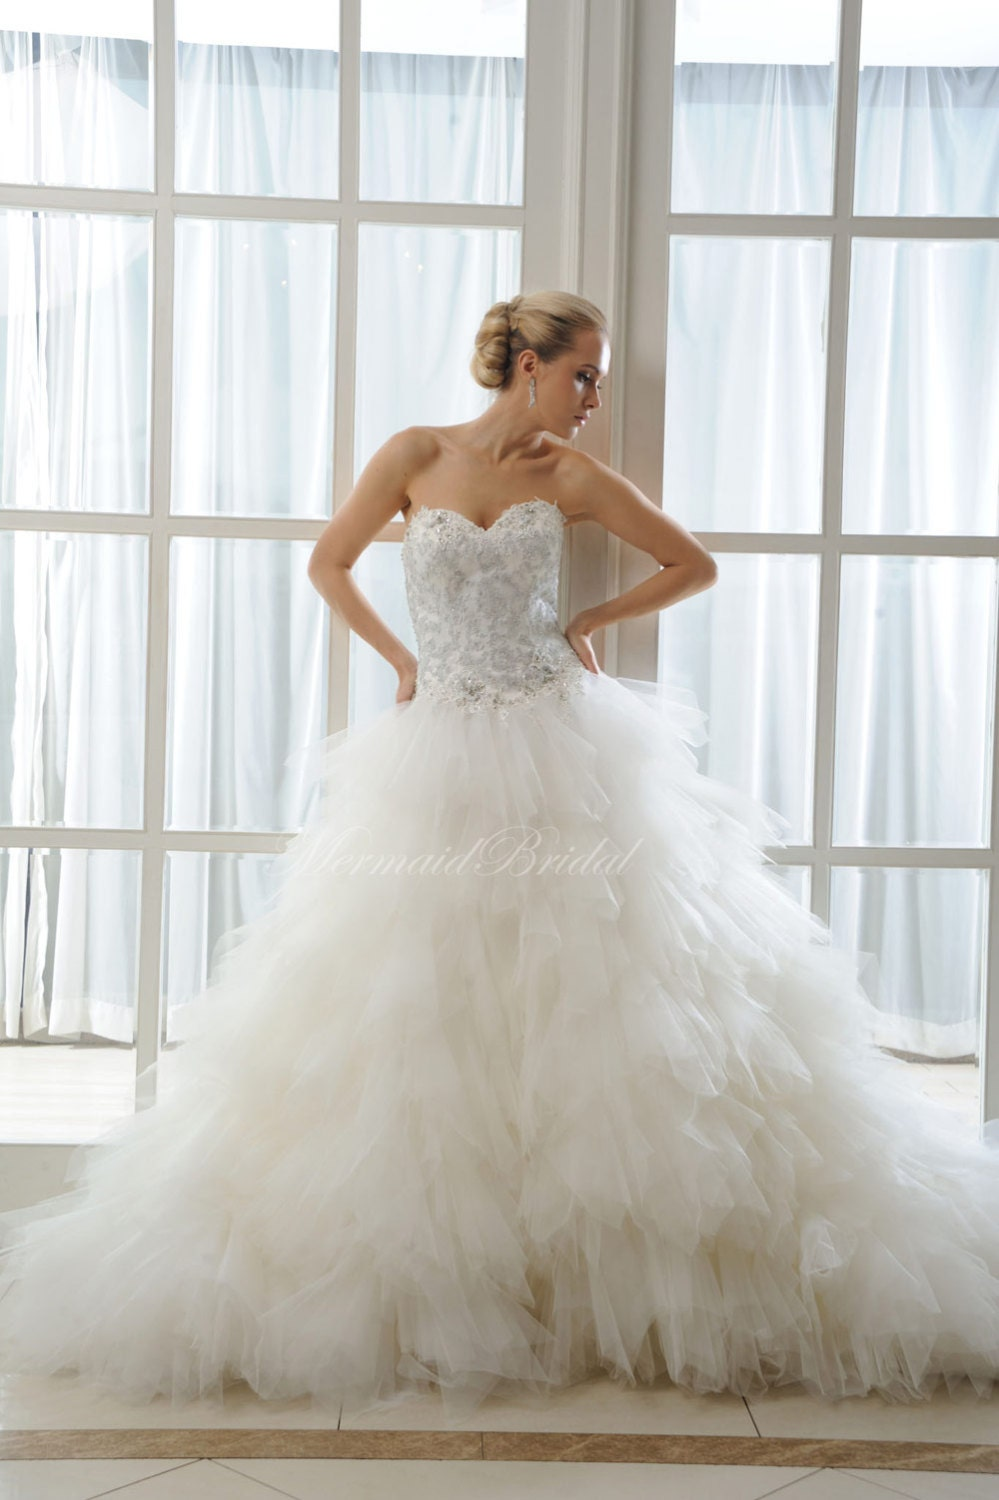 Ball Gown Wedding Dresses In Johannesburg : Etsy your place to buy and sell all things handmade